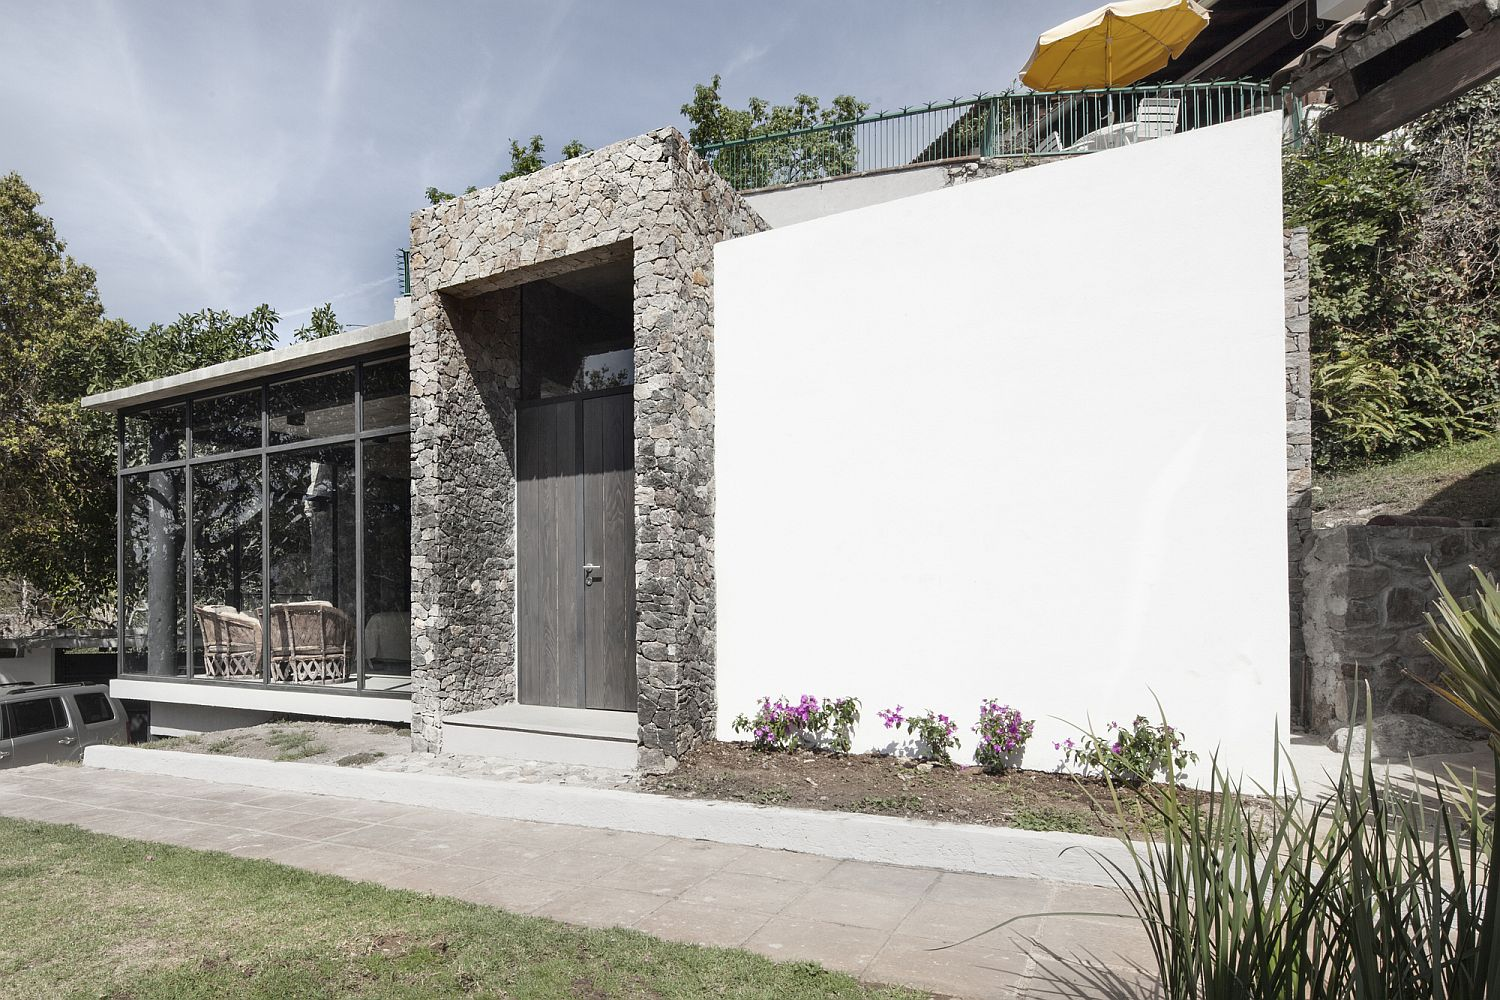 Modern finishes are coupled with natural stone to create a unique home in Mexico